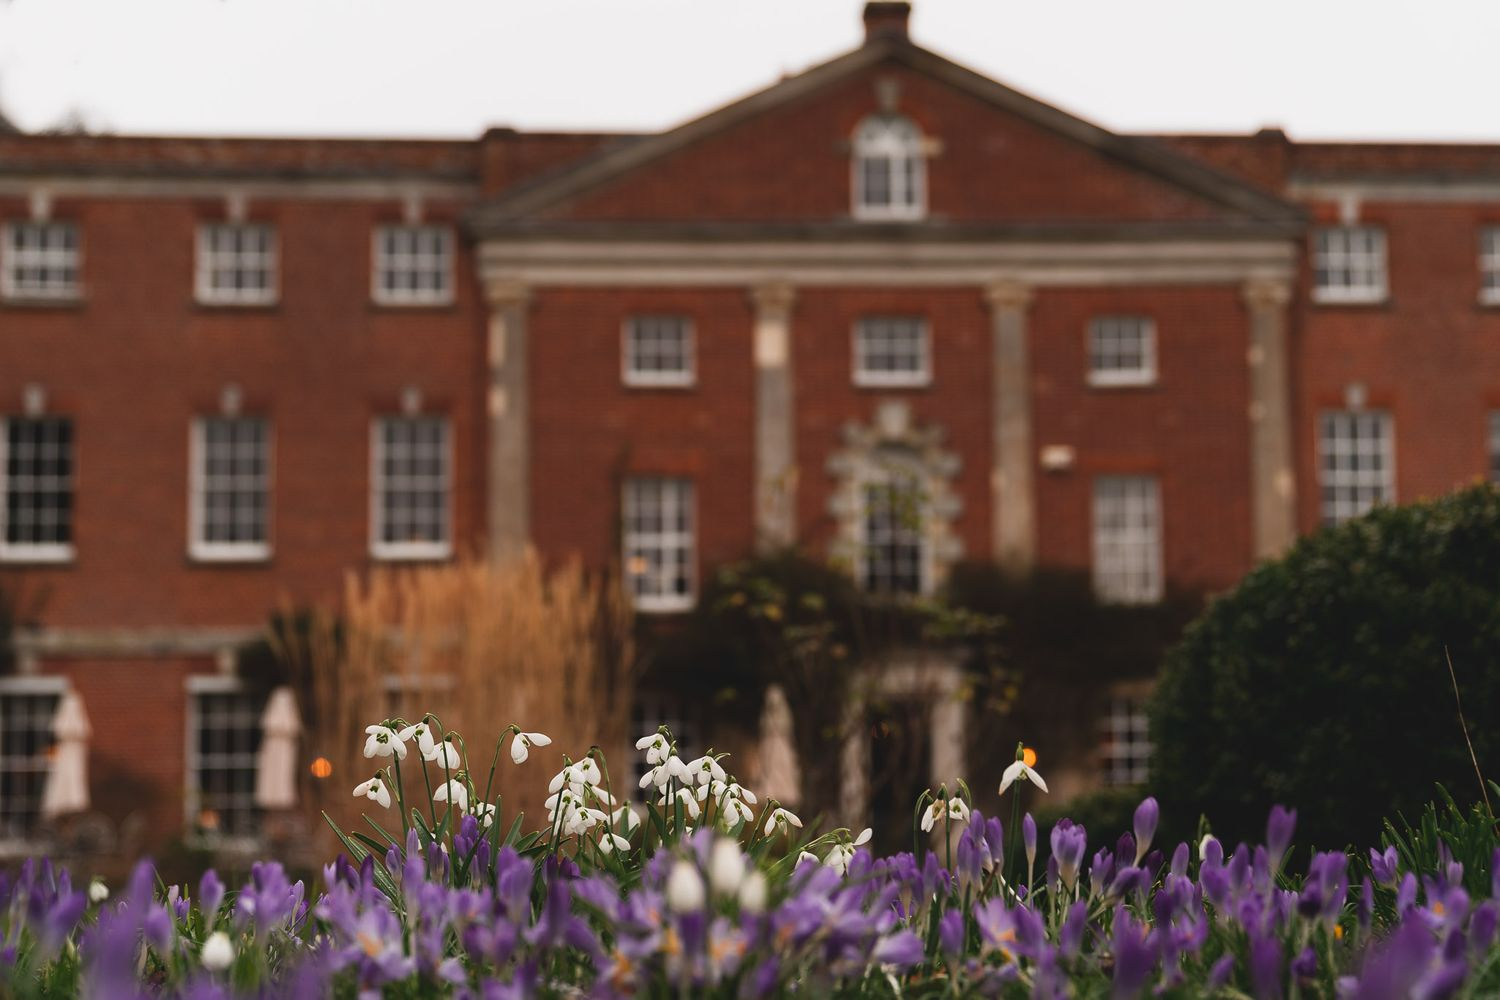 View of 10 Castle Street, Dorset wedding venue, through crocuses and snowdrops.